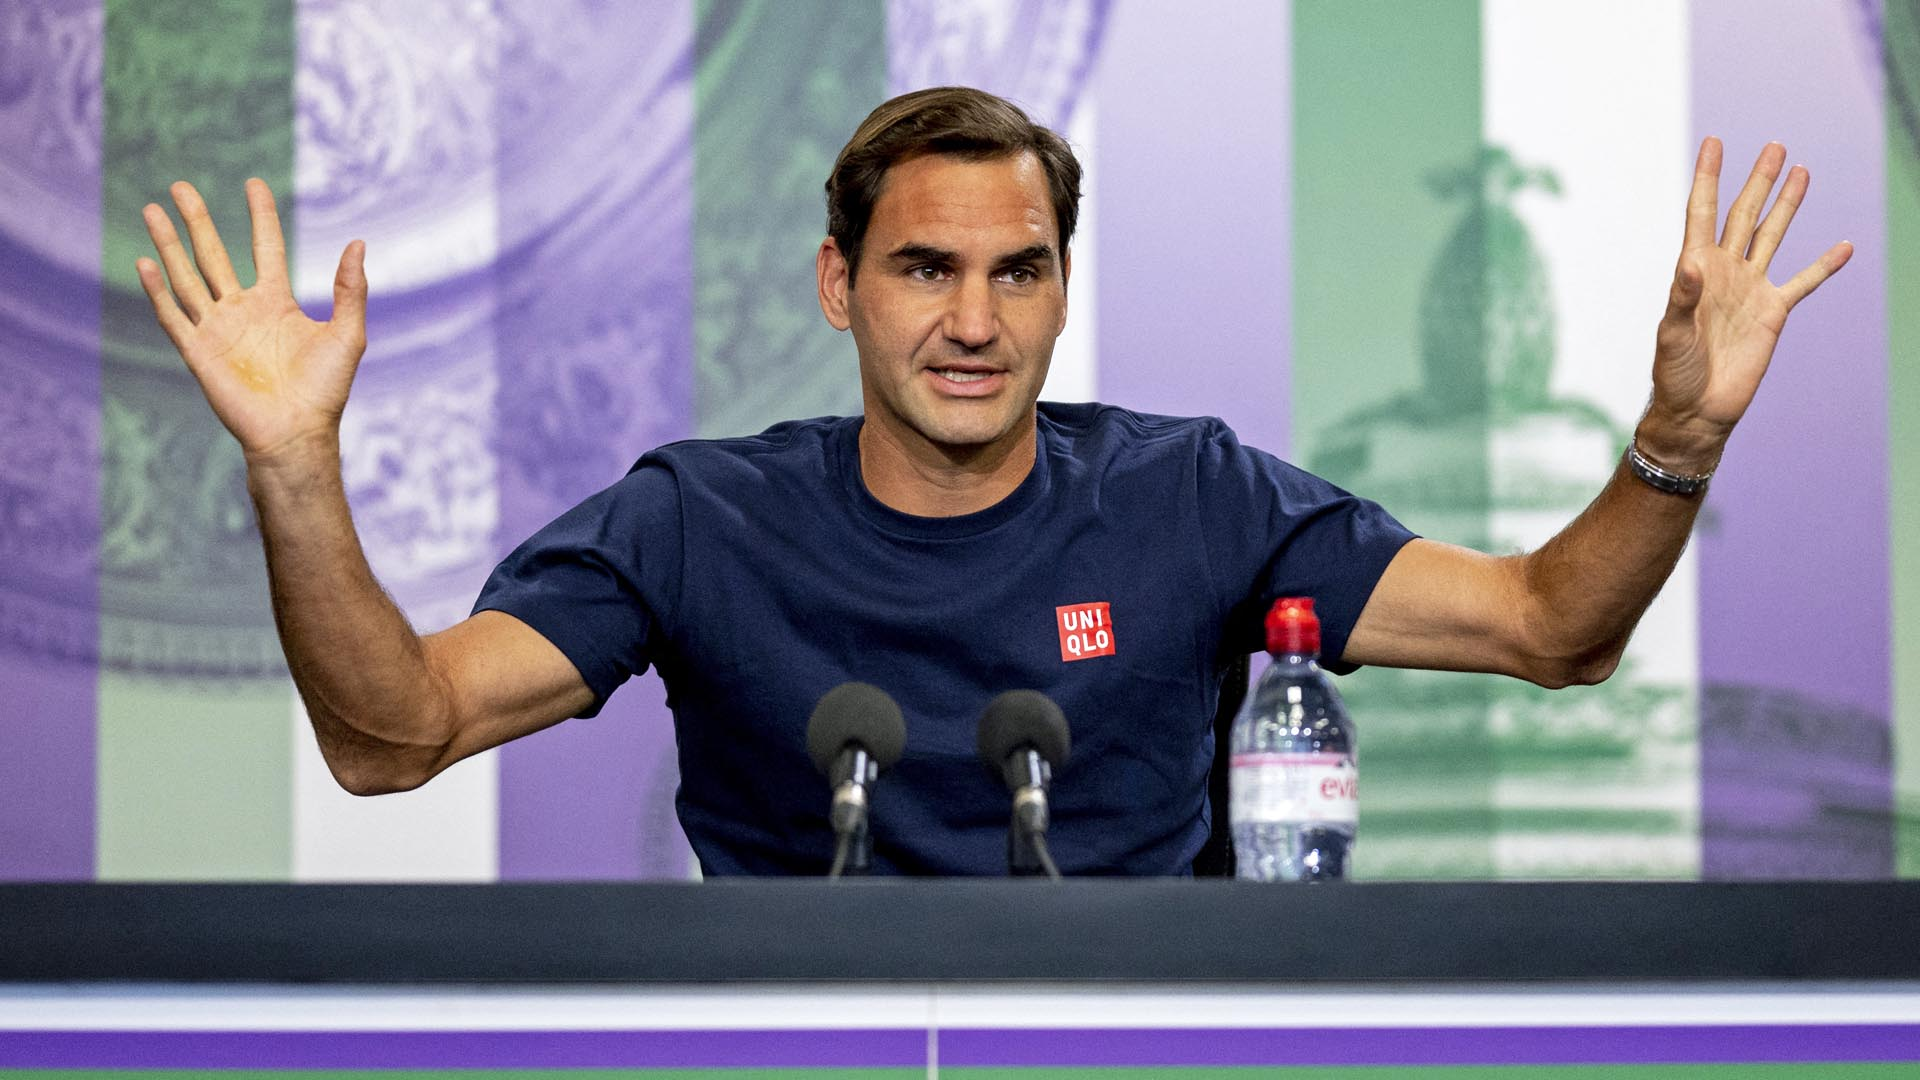 In 46 years, Federer becomes the oldest player to reach the third round at Wimbledon